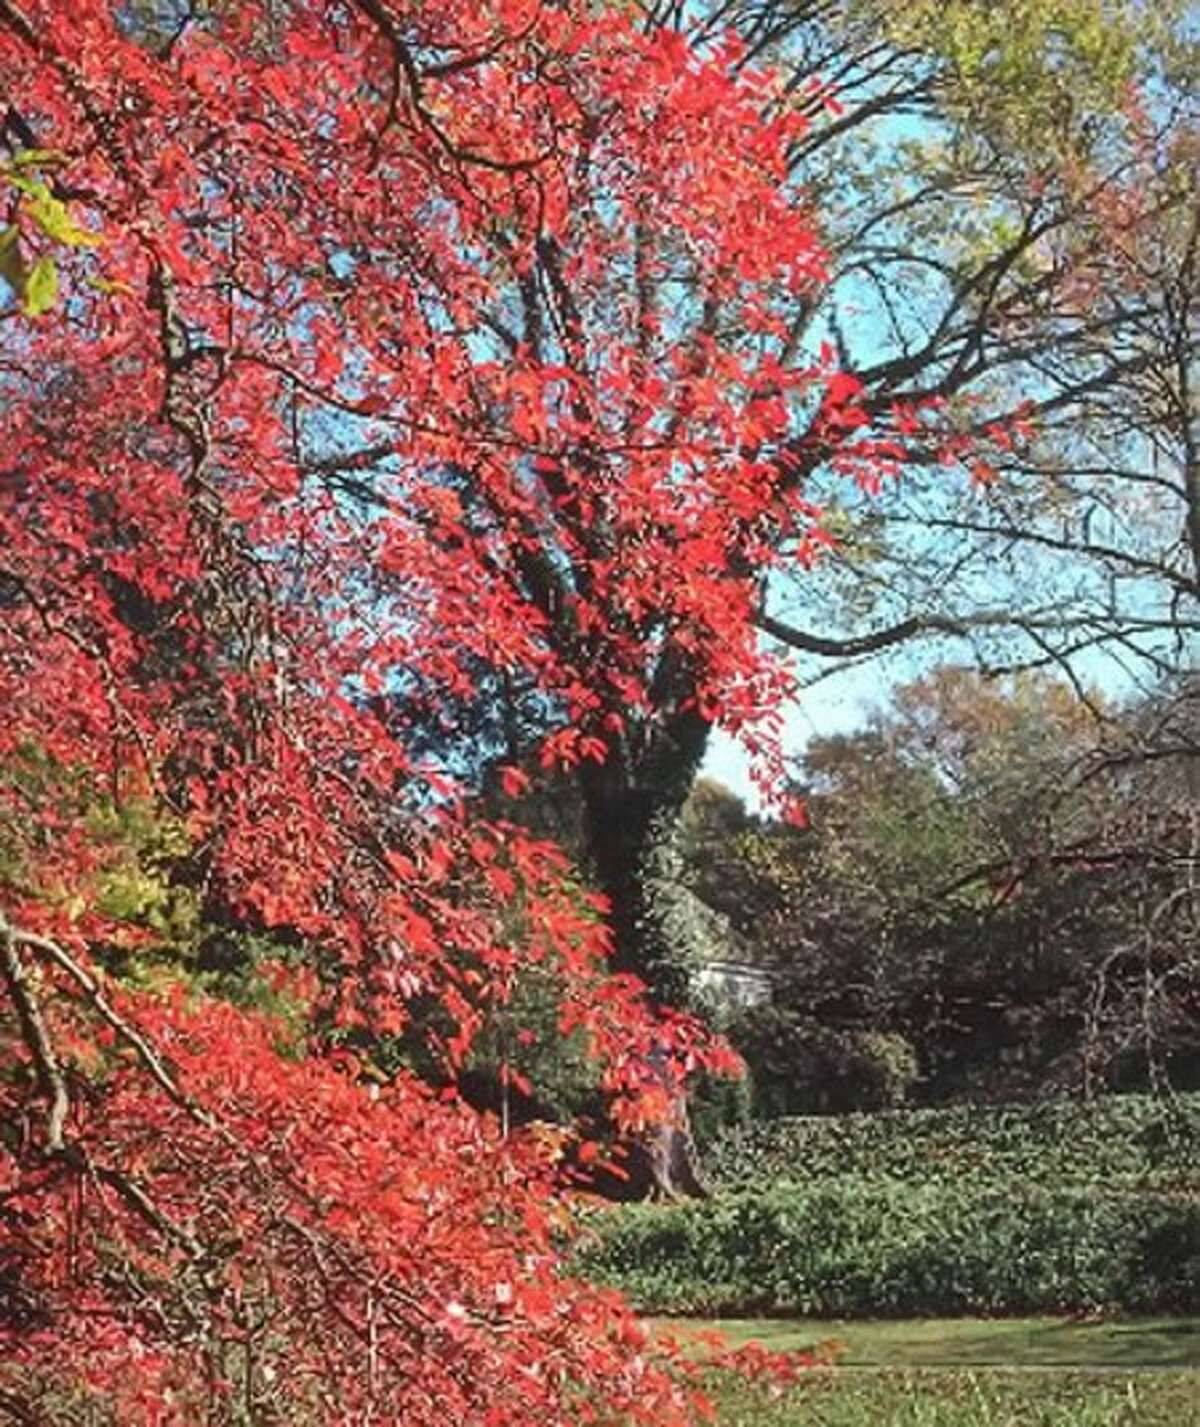 Black gum''s foliage turns royal red in October. (Courtesy Colonial Williamsburg via Newport News Daily Press/MCT)